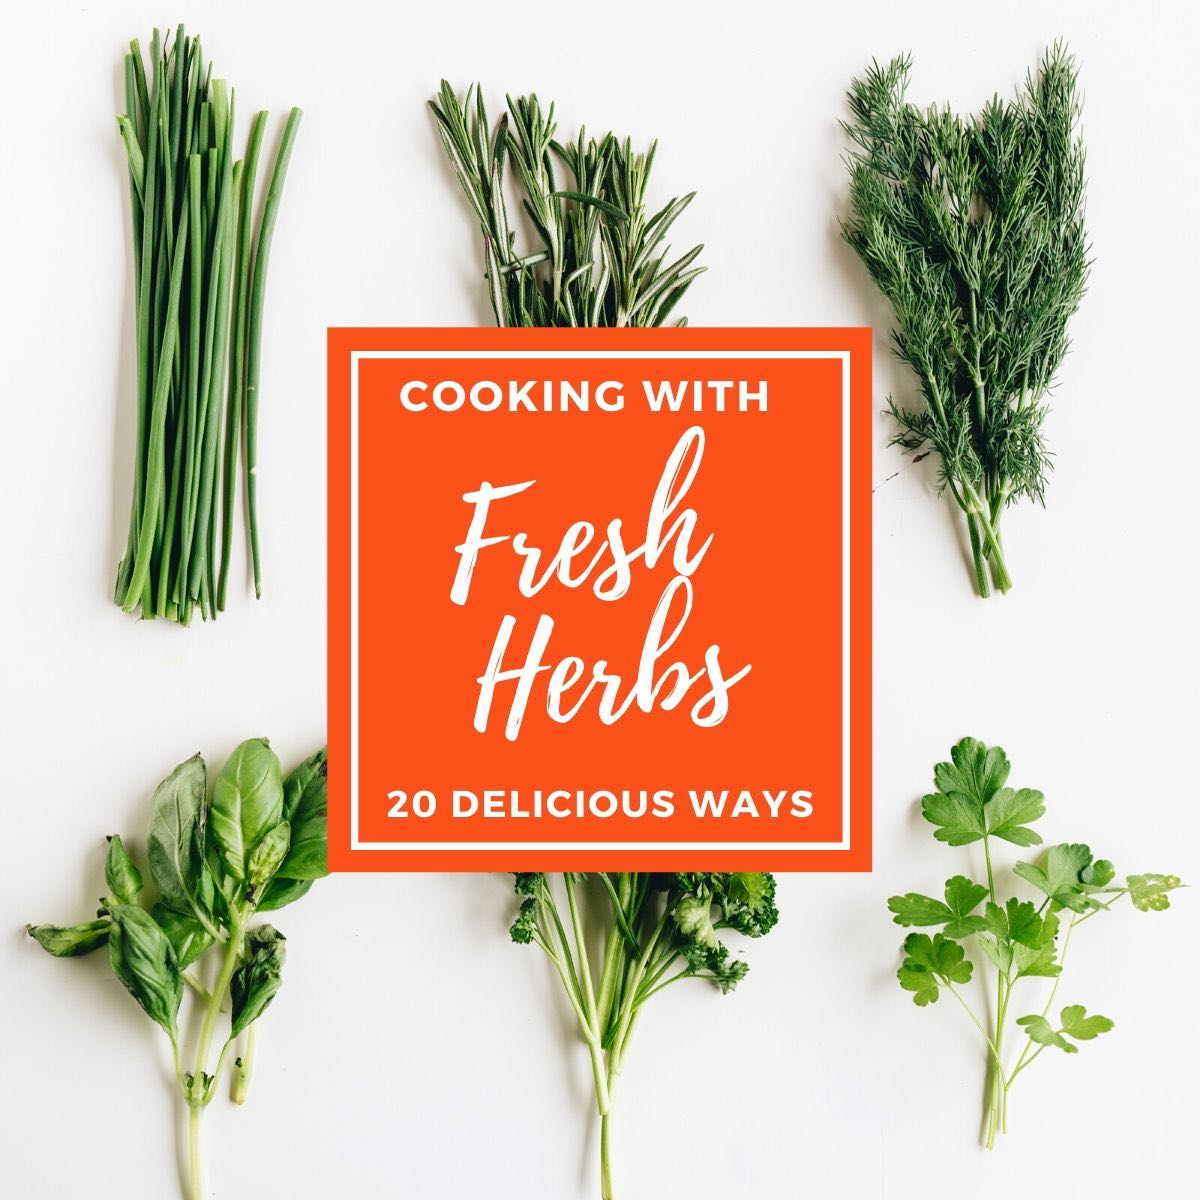 cooking with fresh herbs | chives, rosemary, dill, basil, parsley, and cilantro on a white background